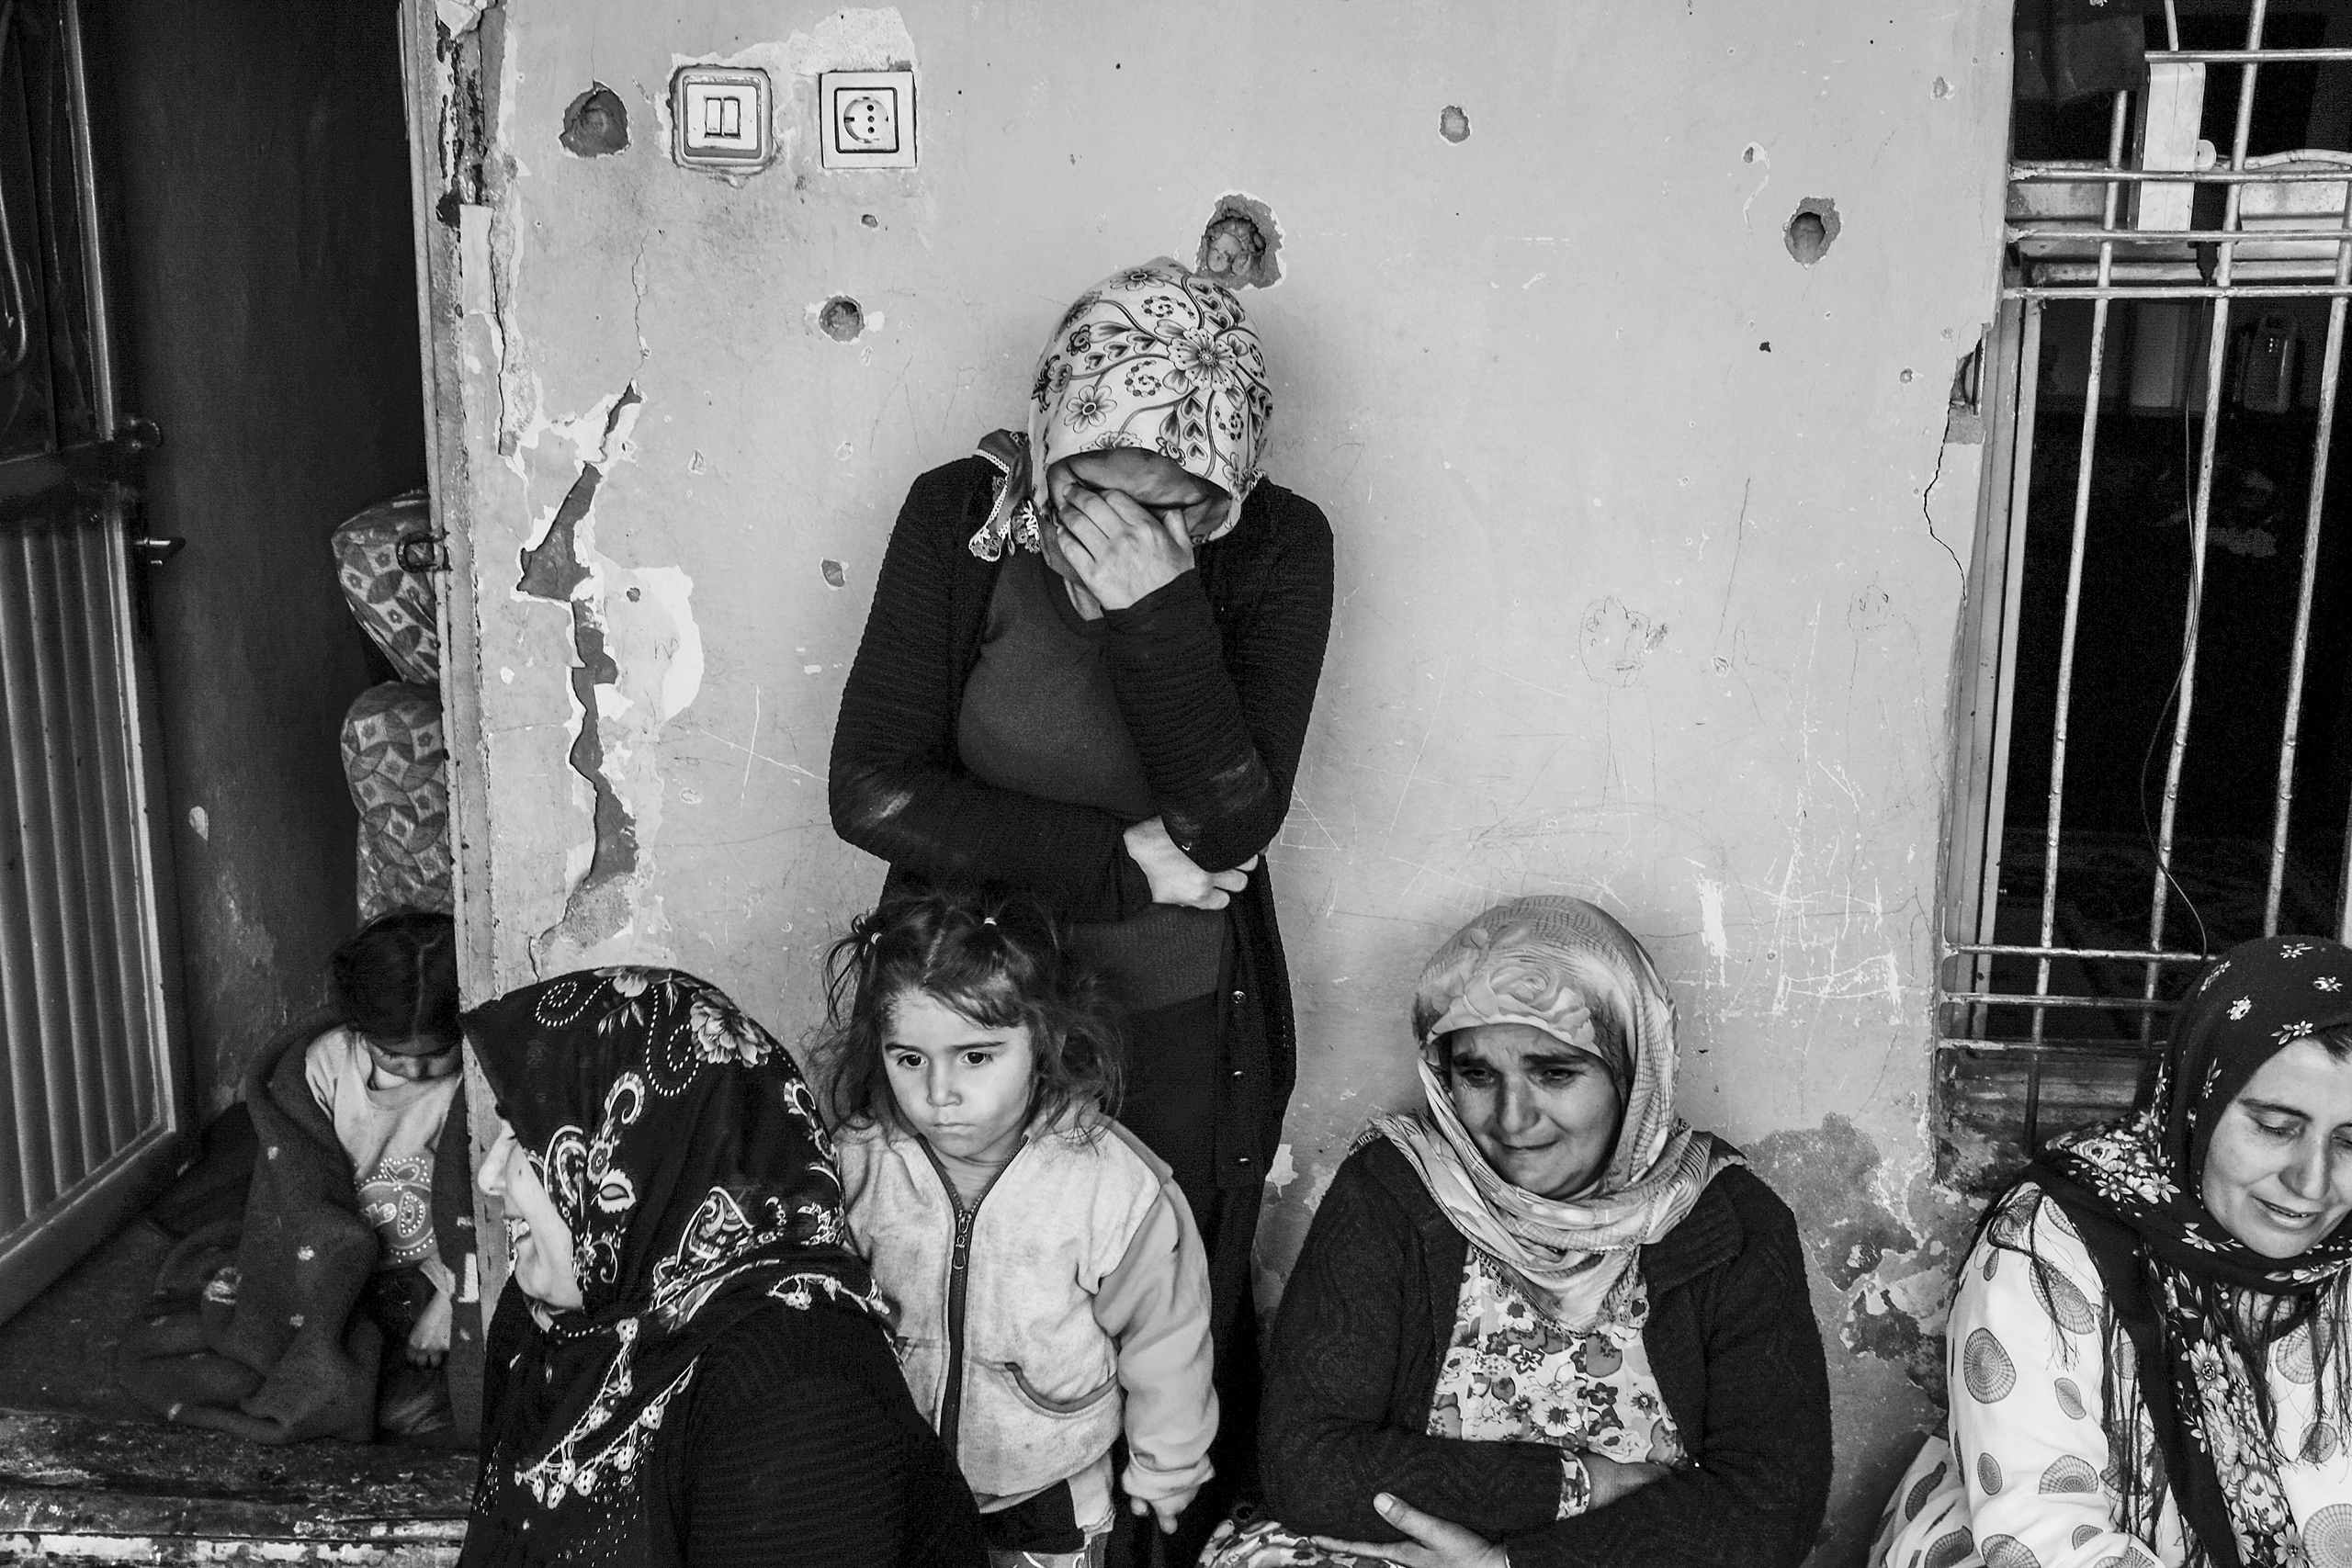 A family mourns the death of their 17-year-old son, Kasim,  who was killed when the building he was in was destroyed by Turkish special forces, Cizre, Turkey, March 2016.